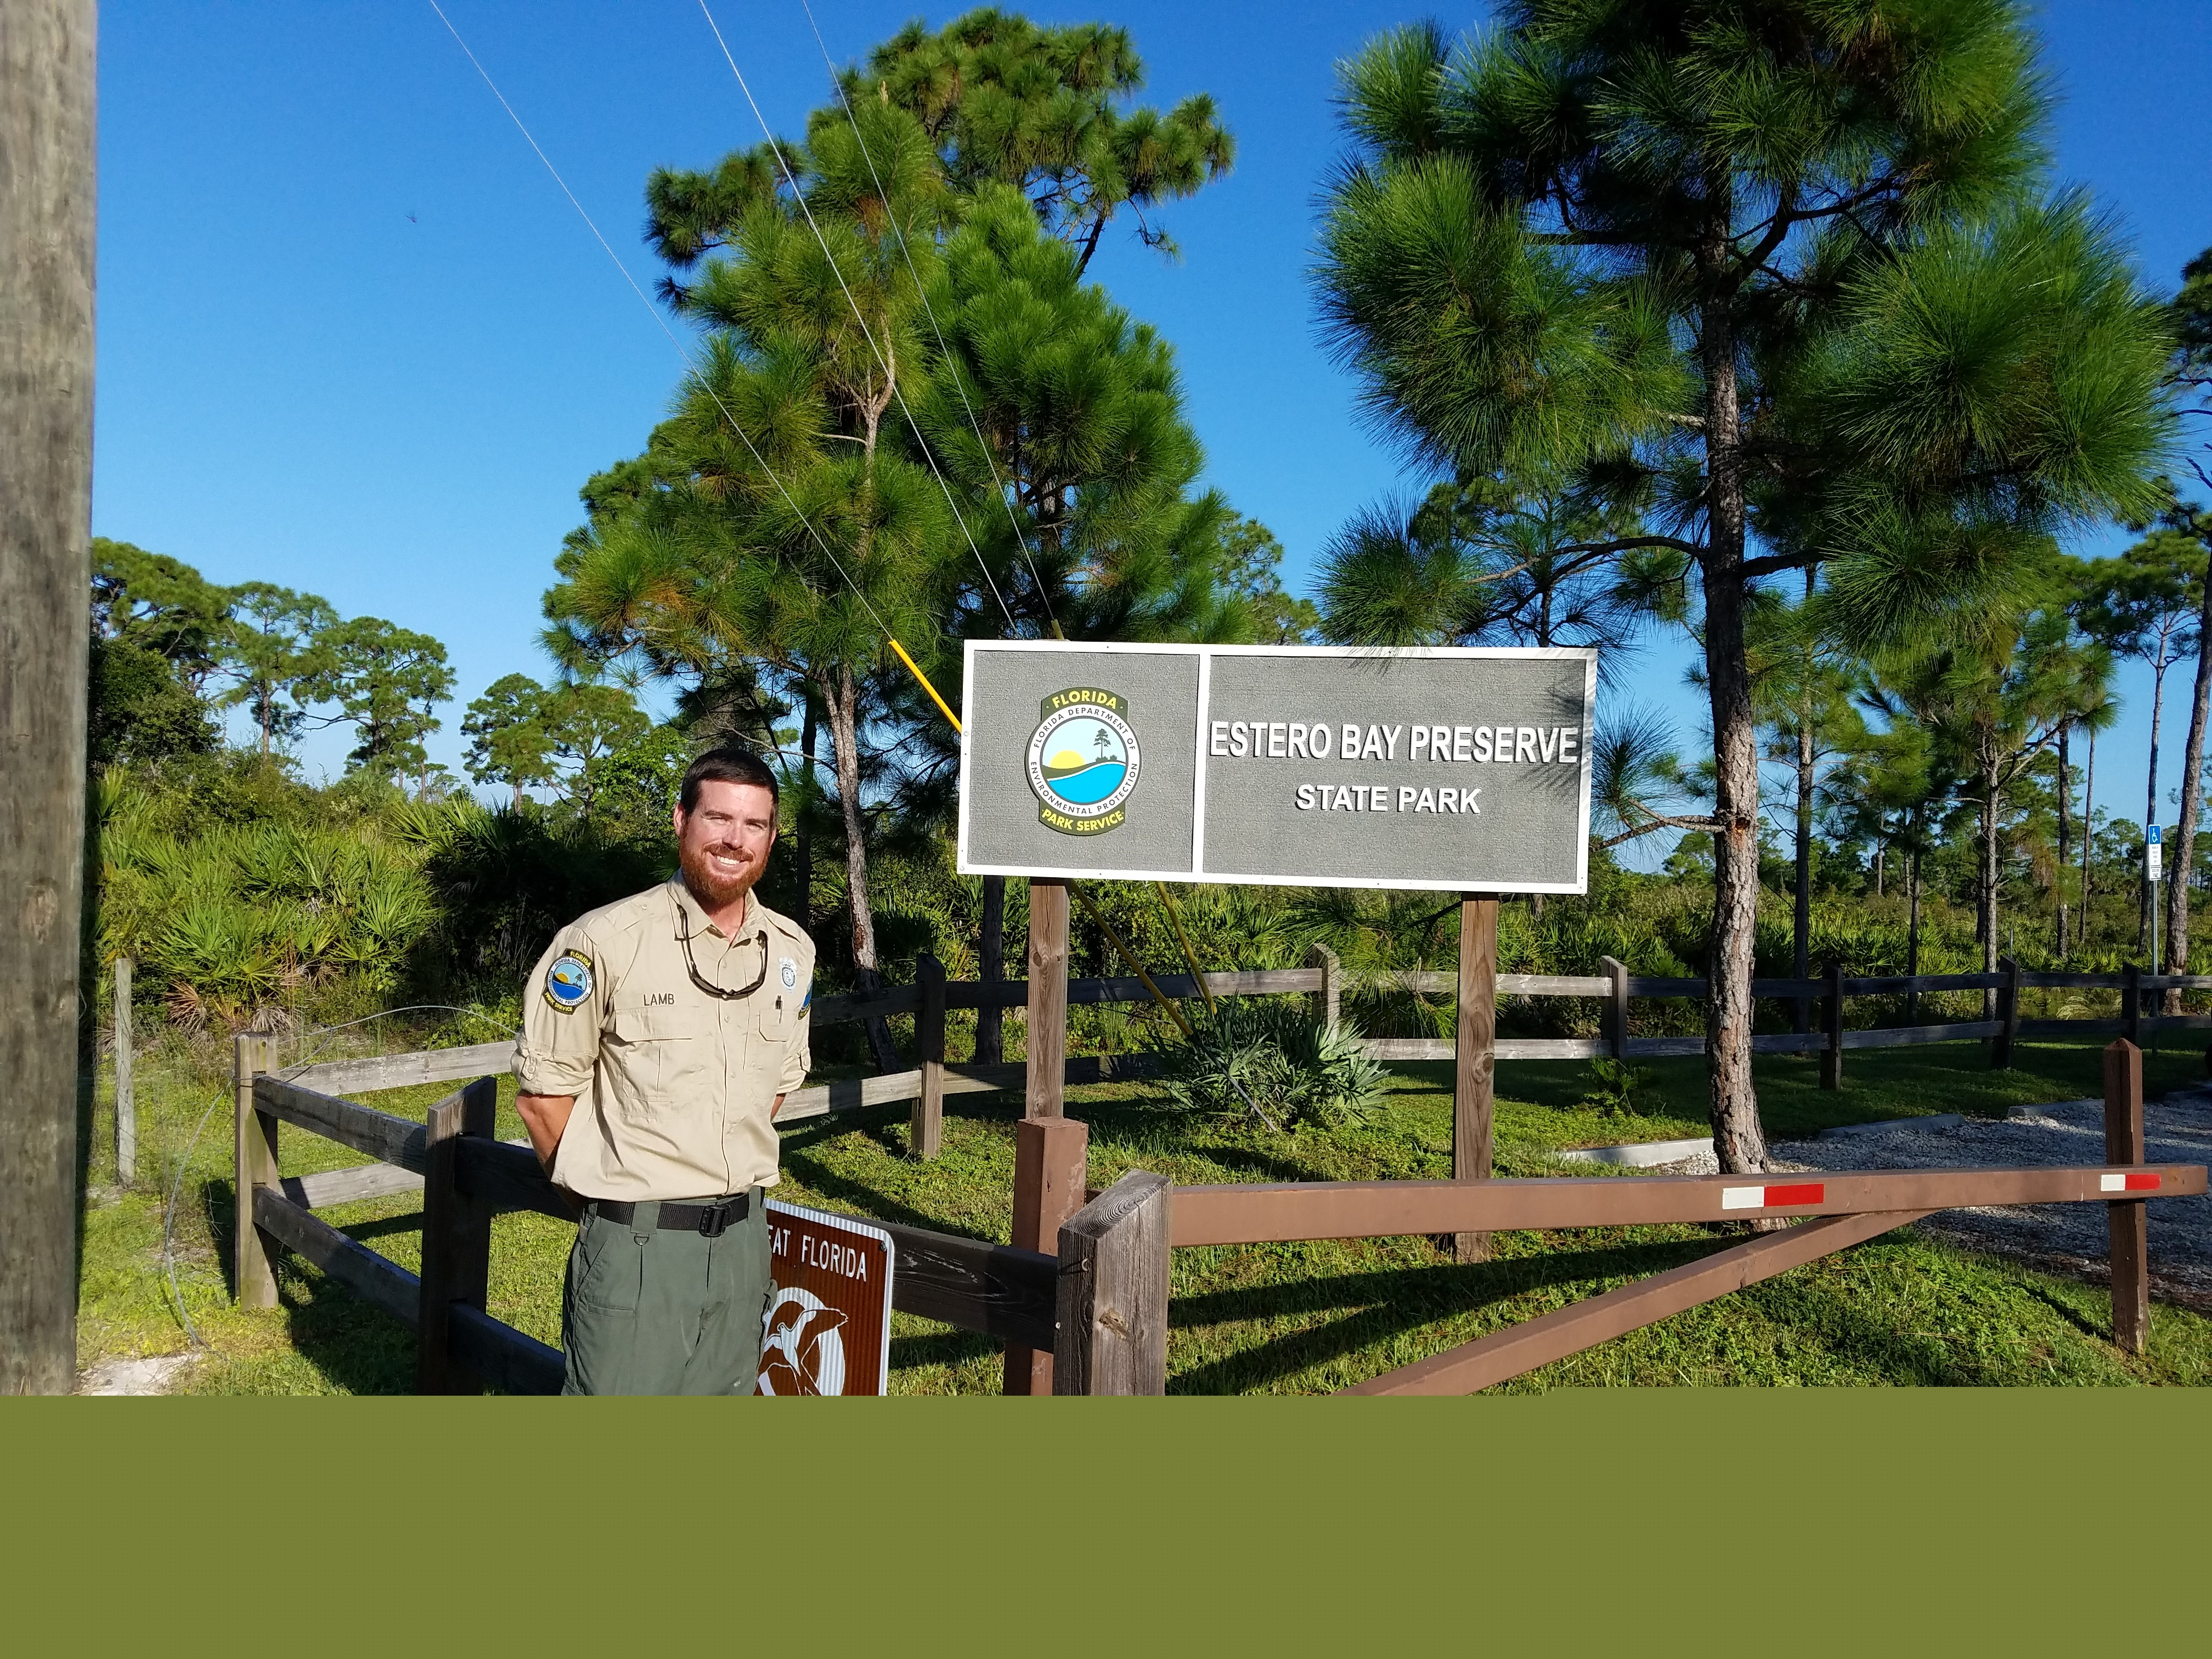 Justin Lamb poses with the park sign at Estero Bay Preserve State Park.